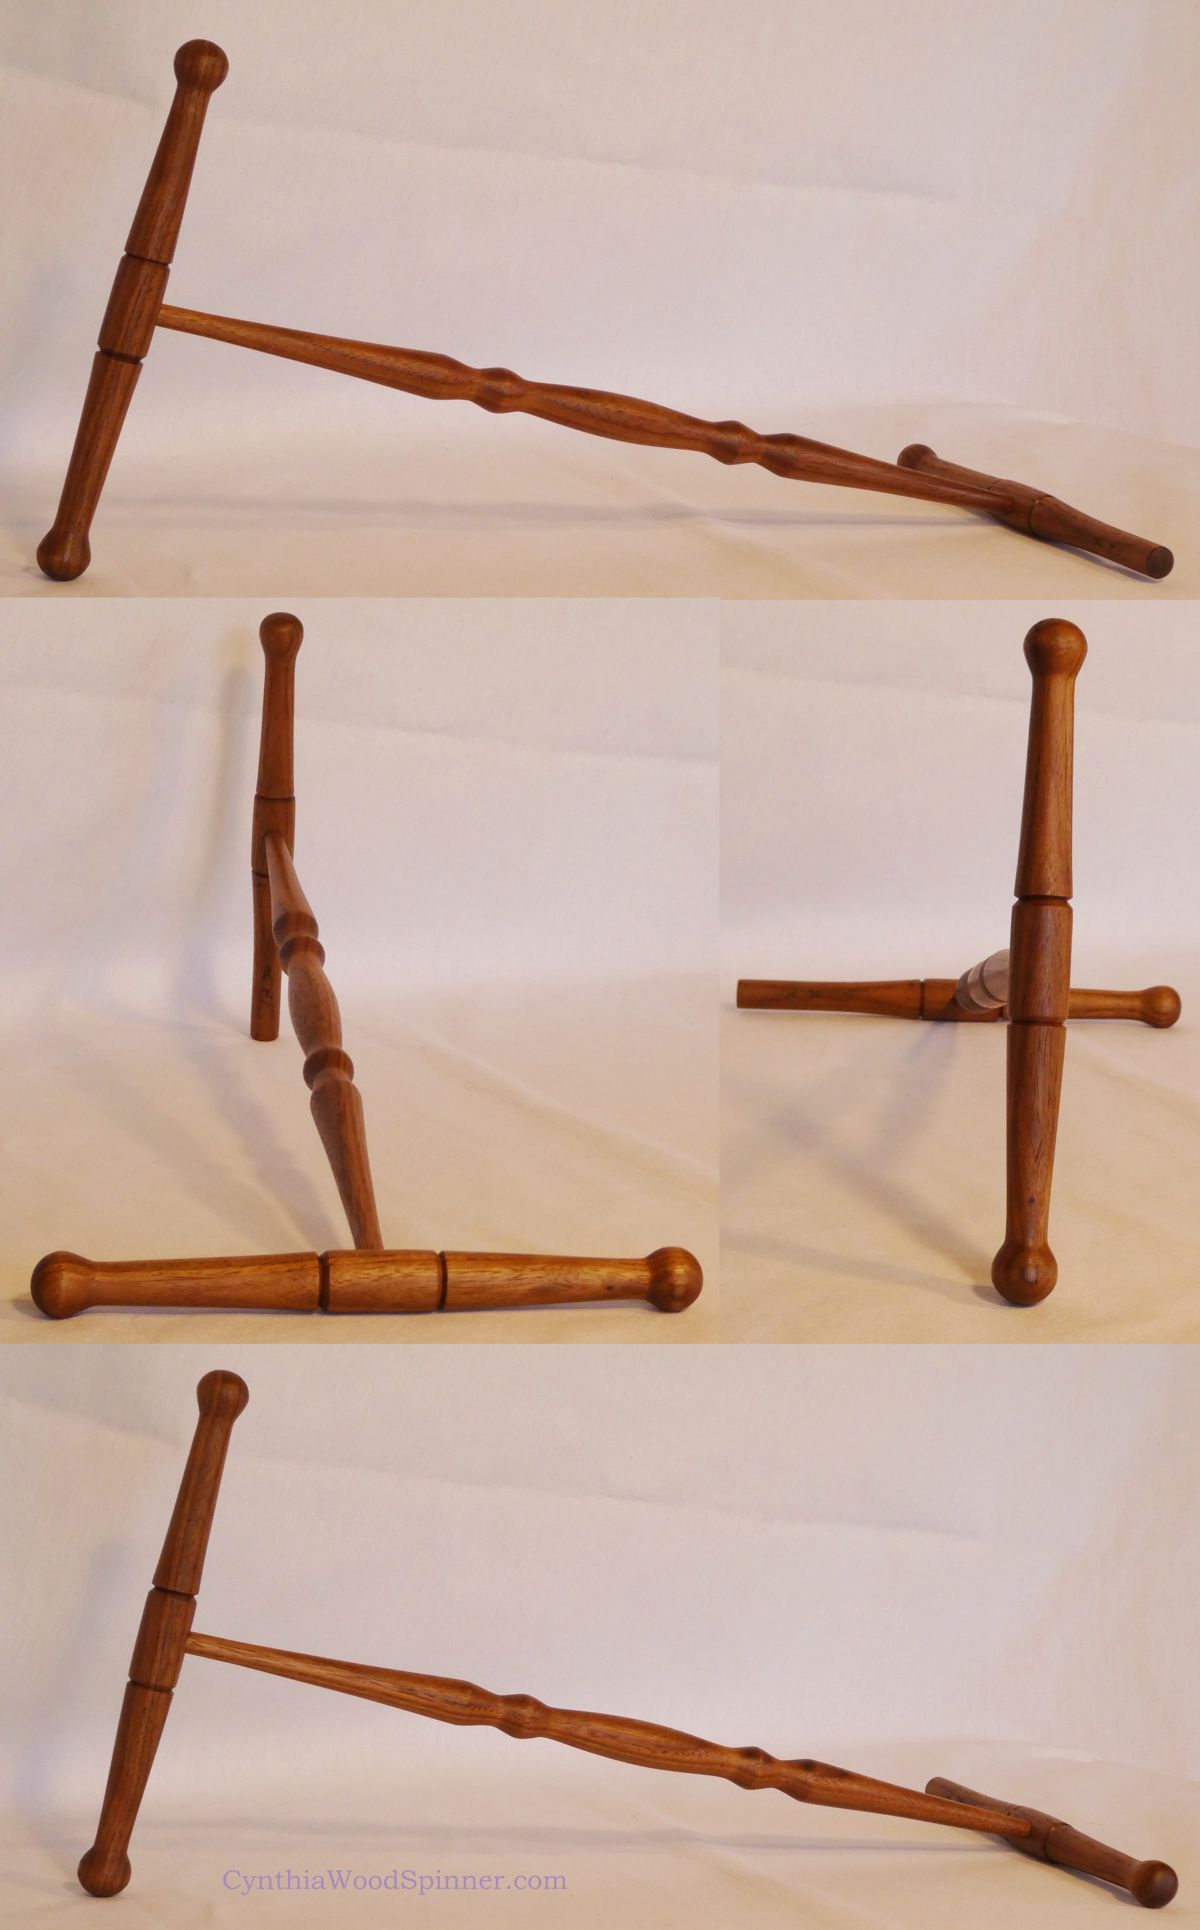 Full size niddy-noddy handmade from Walnut wood by Cynthia D. Haney on her woodlathe for winding or wrapping a 2 yard skein of yarn.